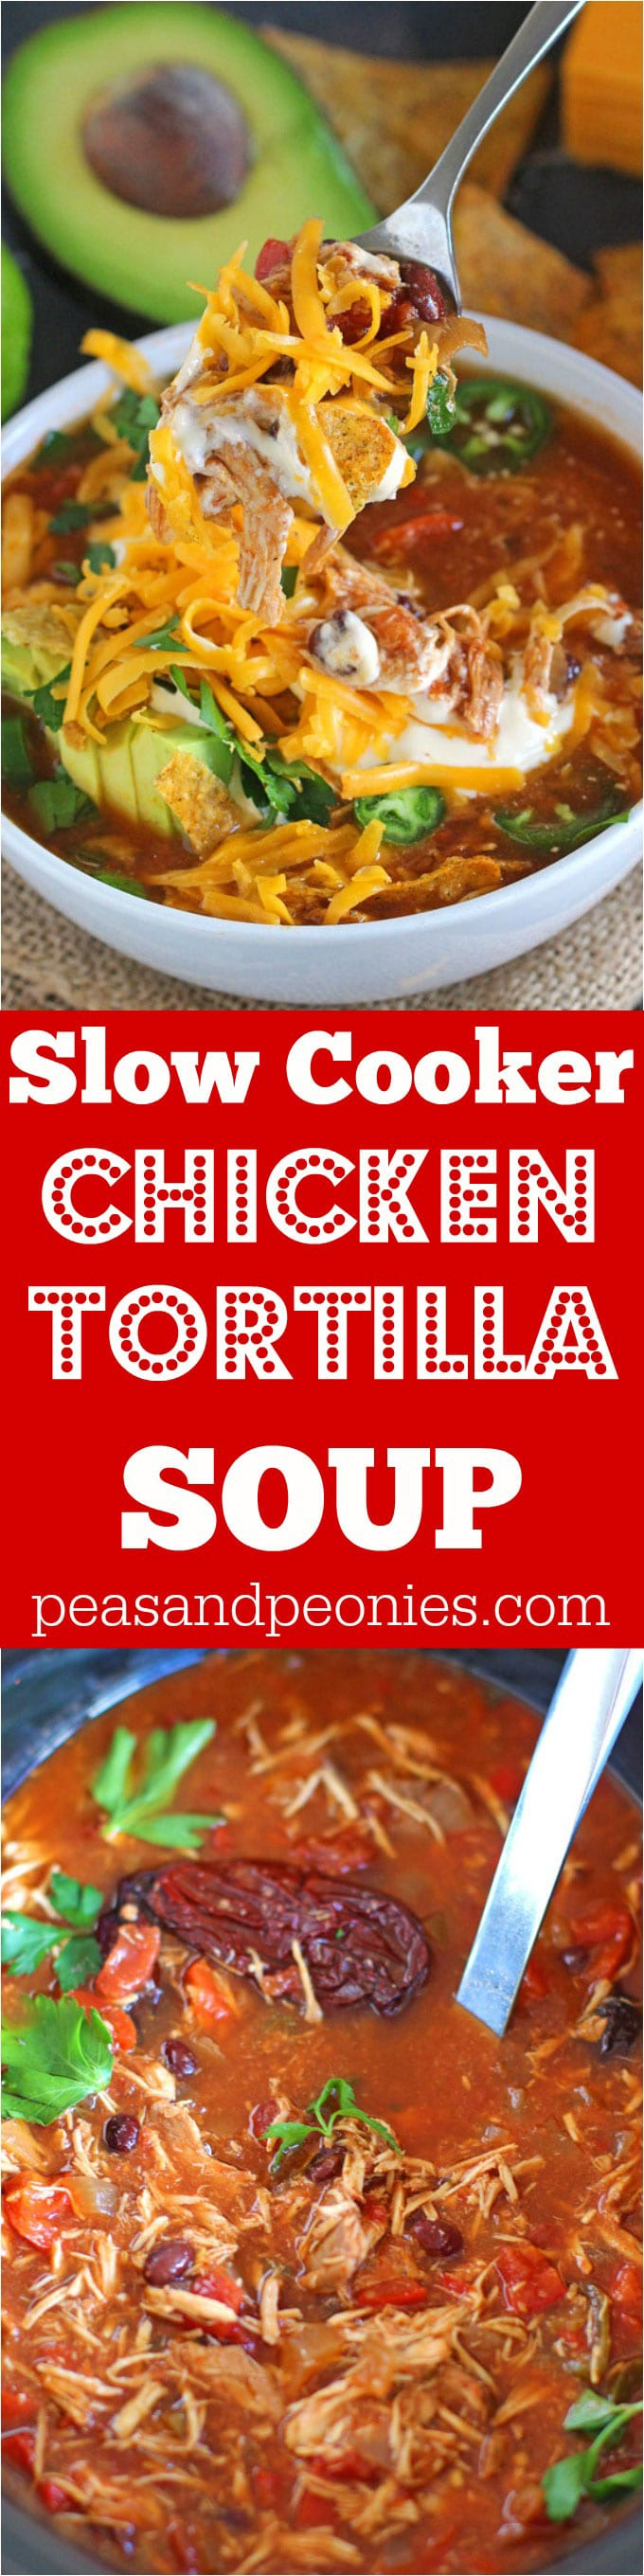 Slow Cooker Chicken Tortilla Soup — Spicy, easy, and bursting with flavor,  this